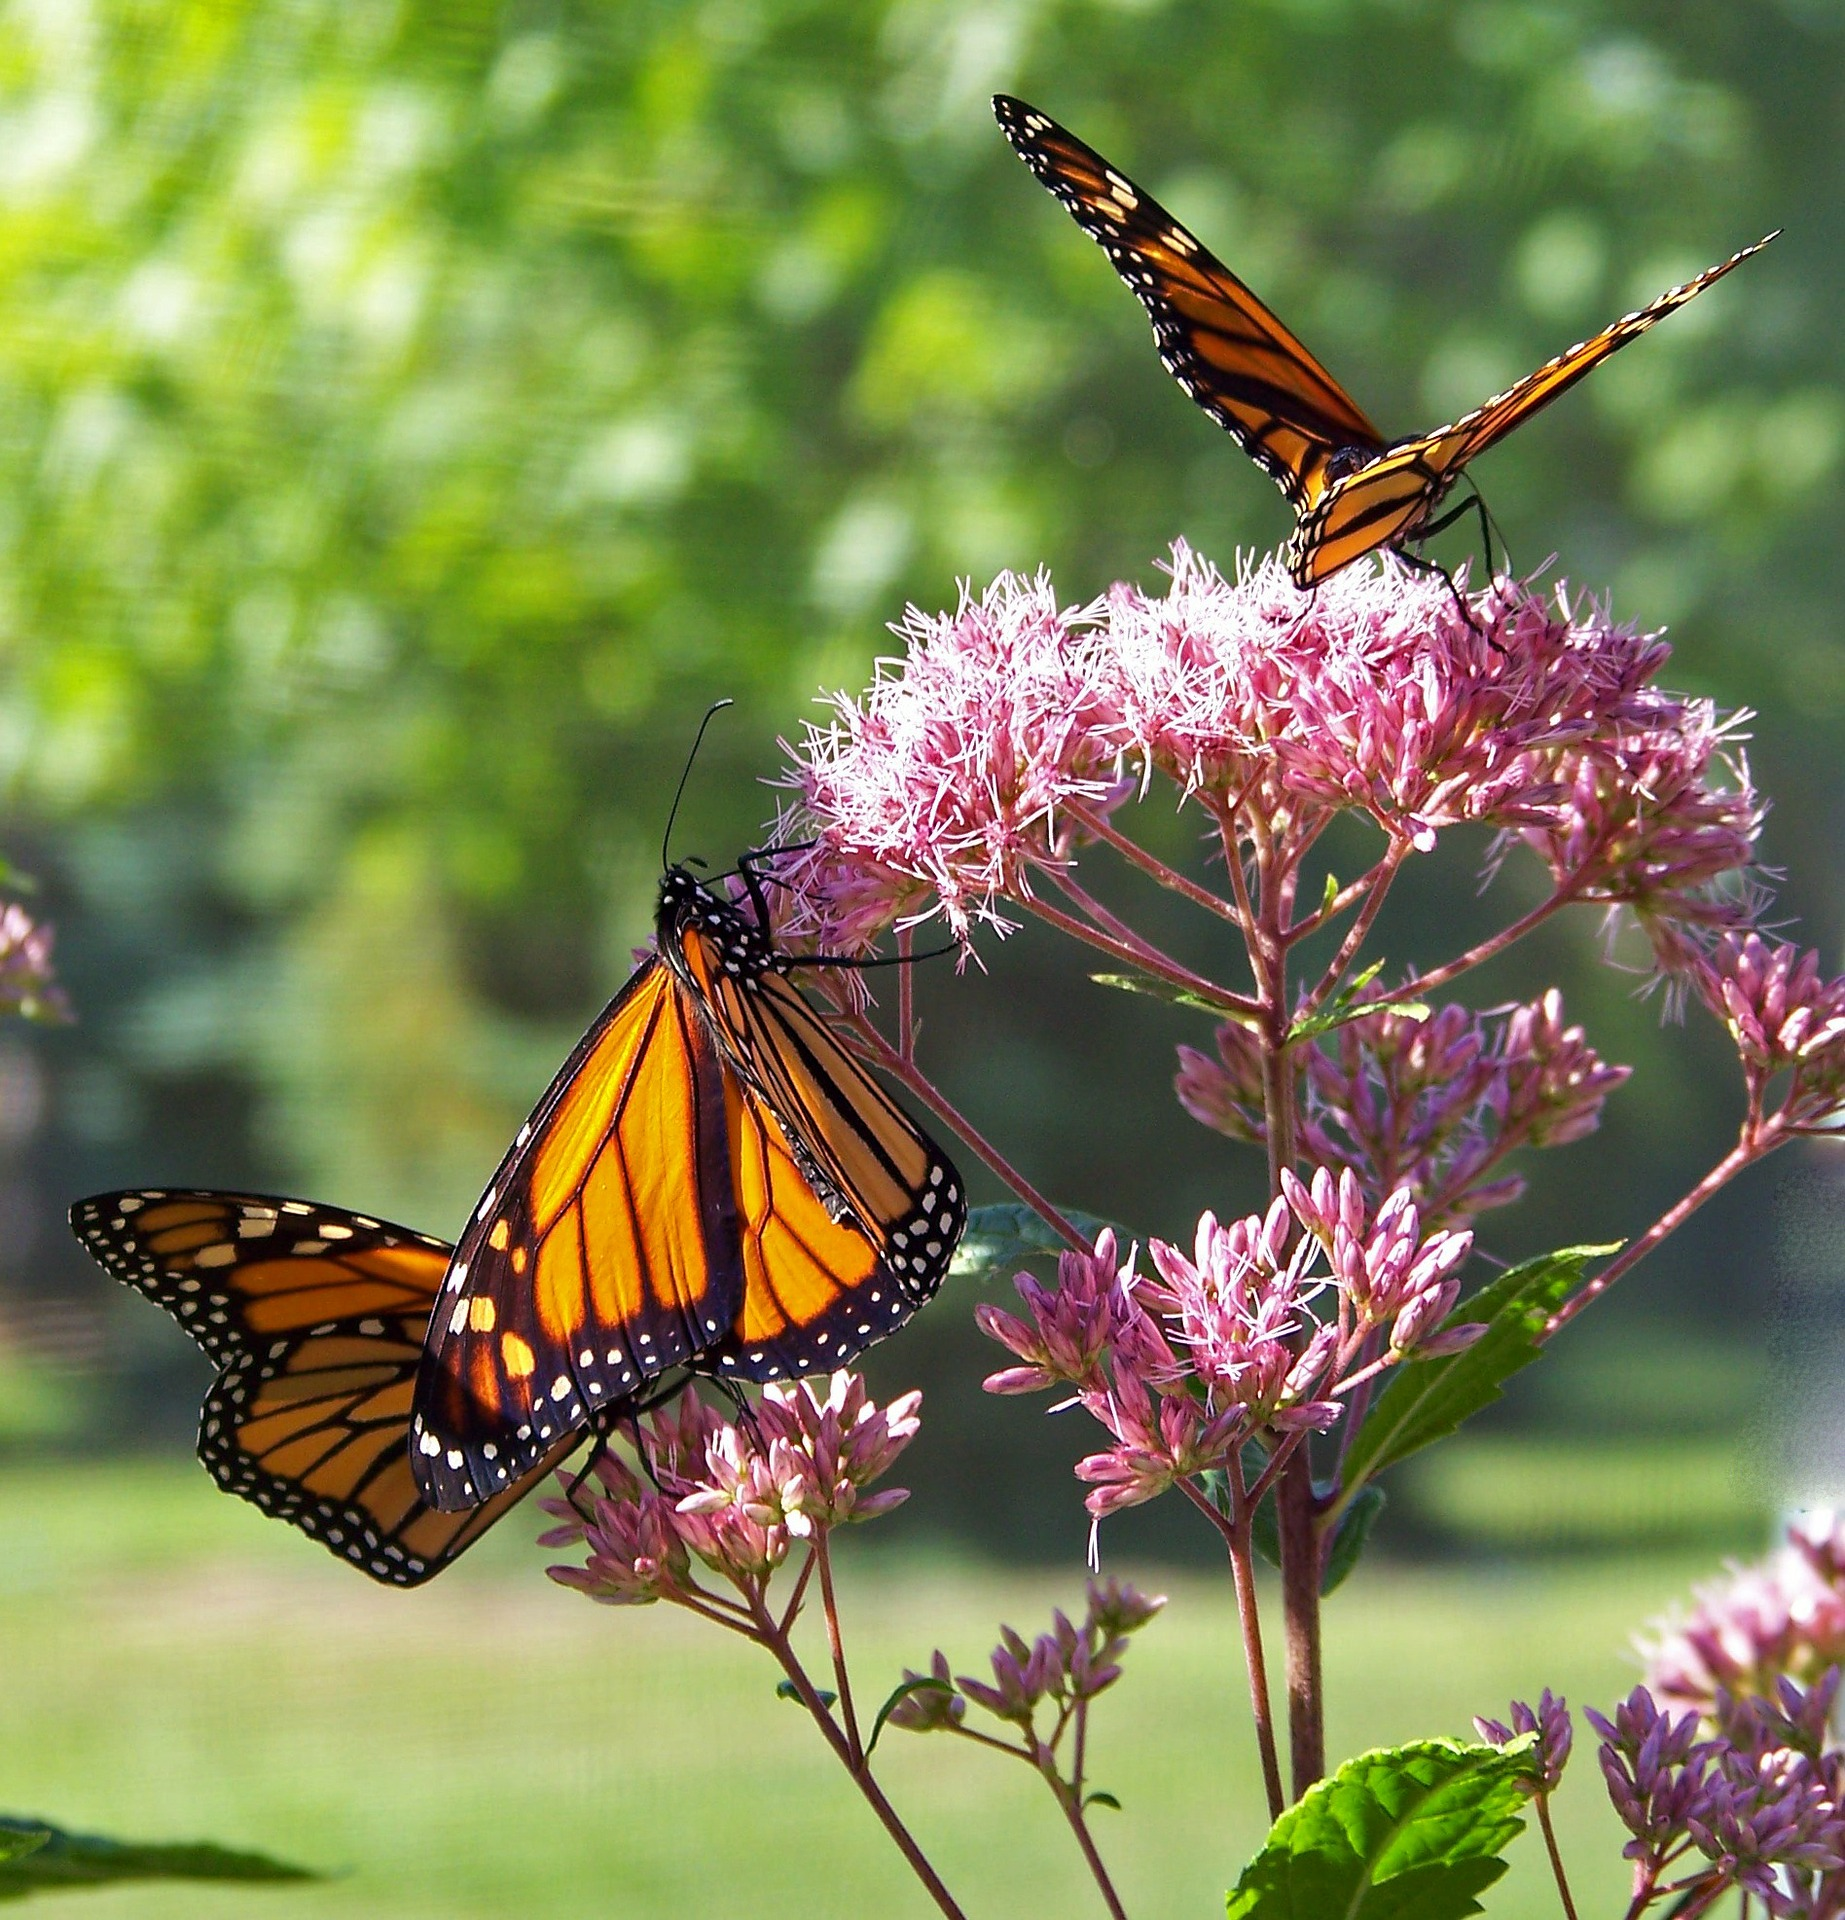 Monarch butterfly. PublicDomainPictures via Pixabay Creative Commons CC0